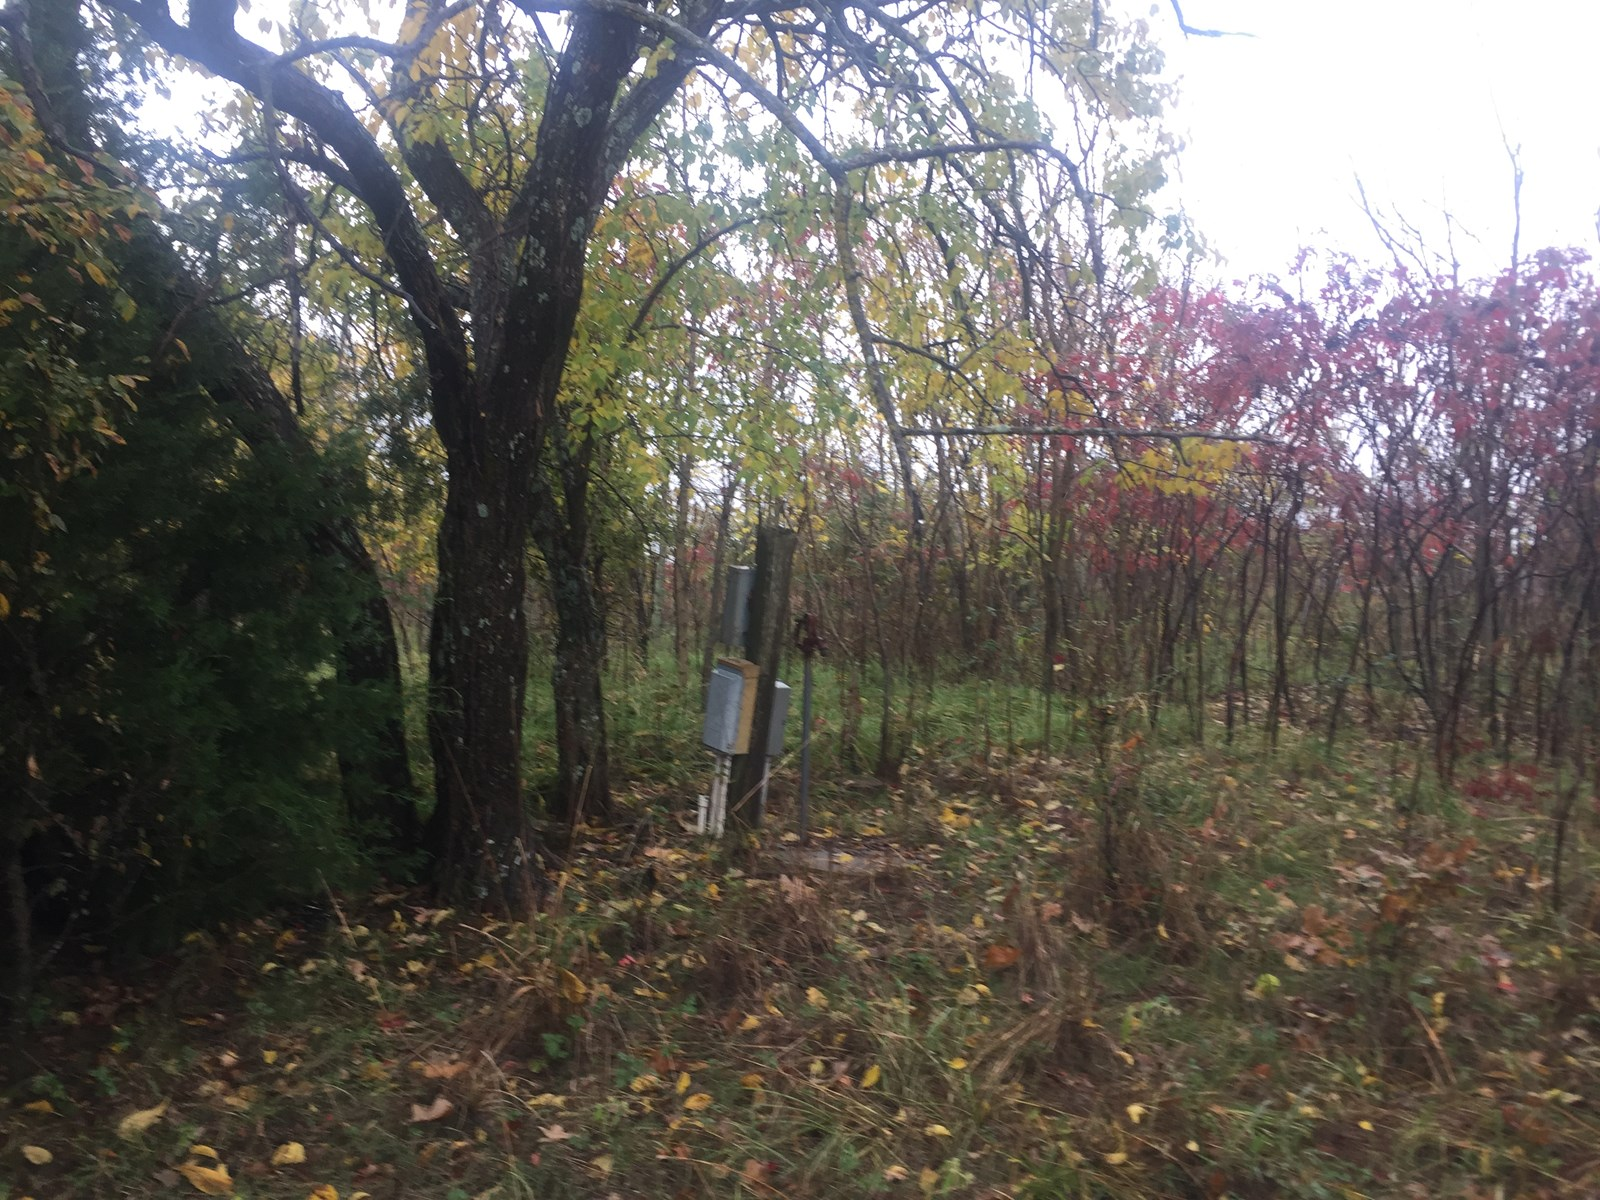 Land for Sale in Clayton,OK- Lake Sardis w/ Mountain Views